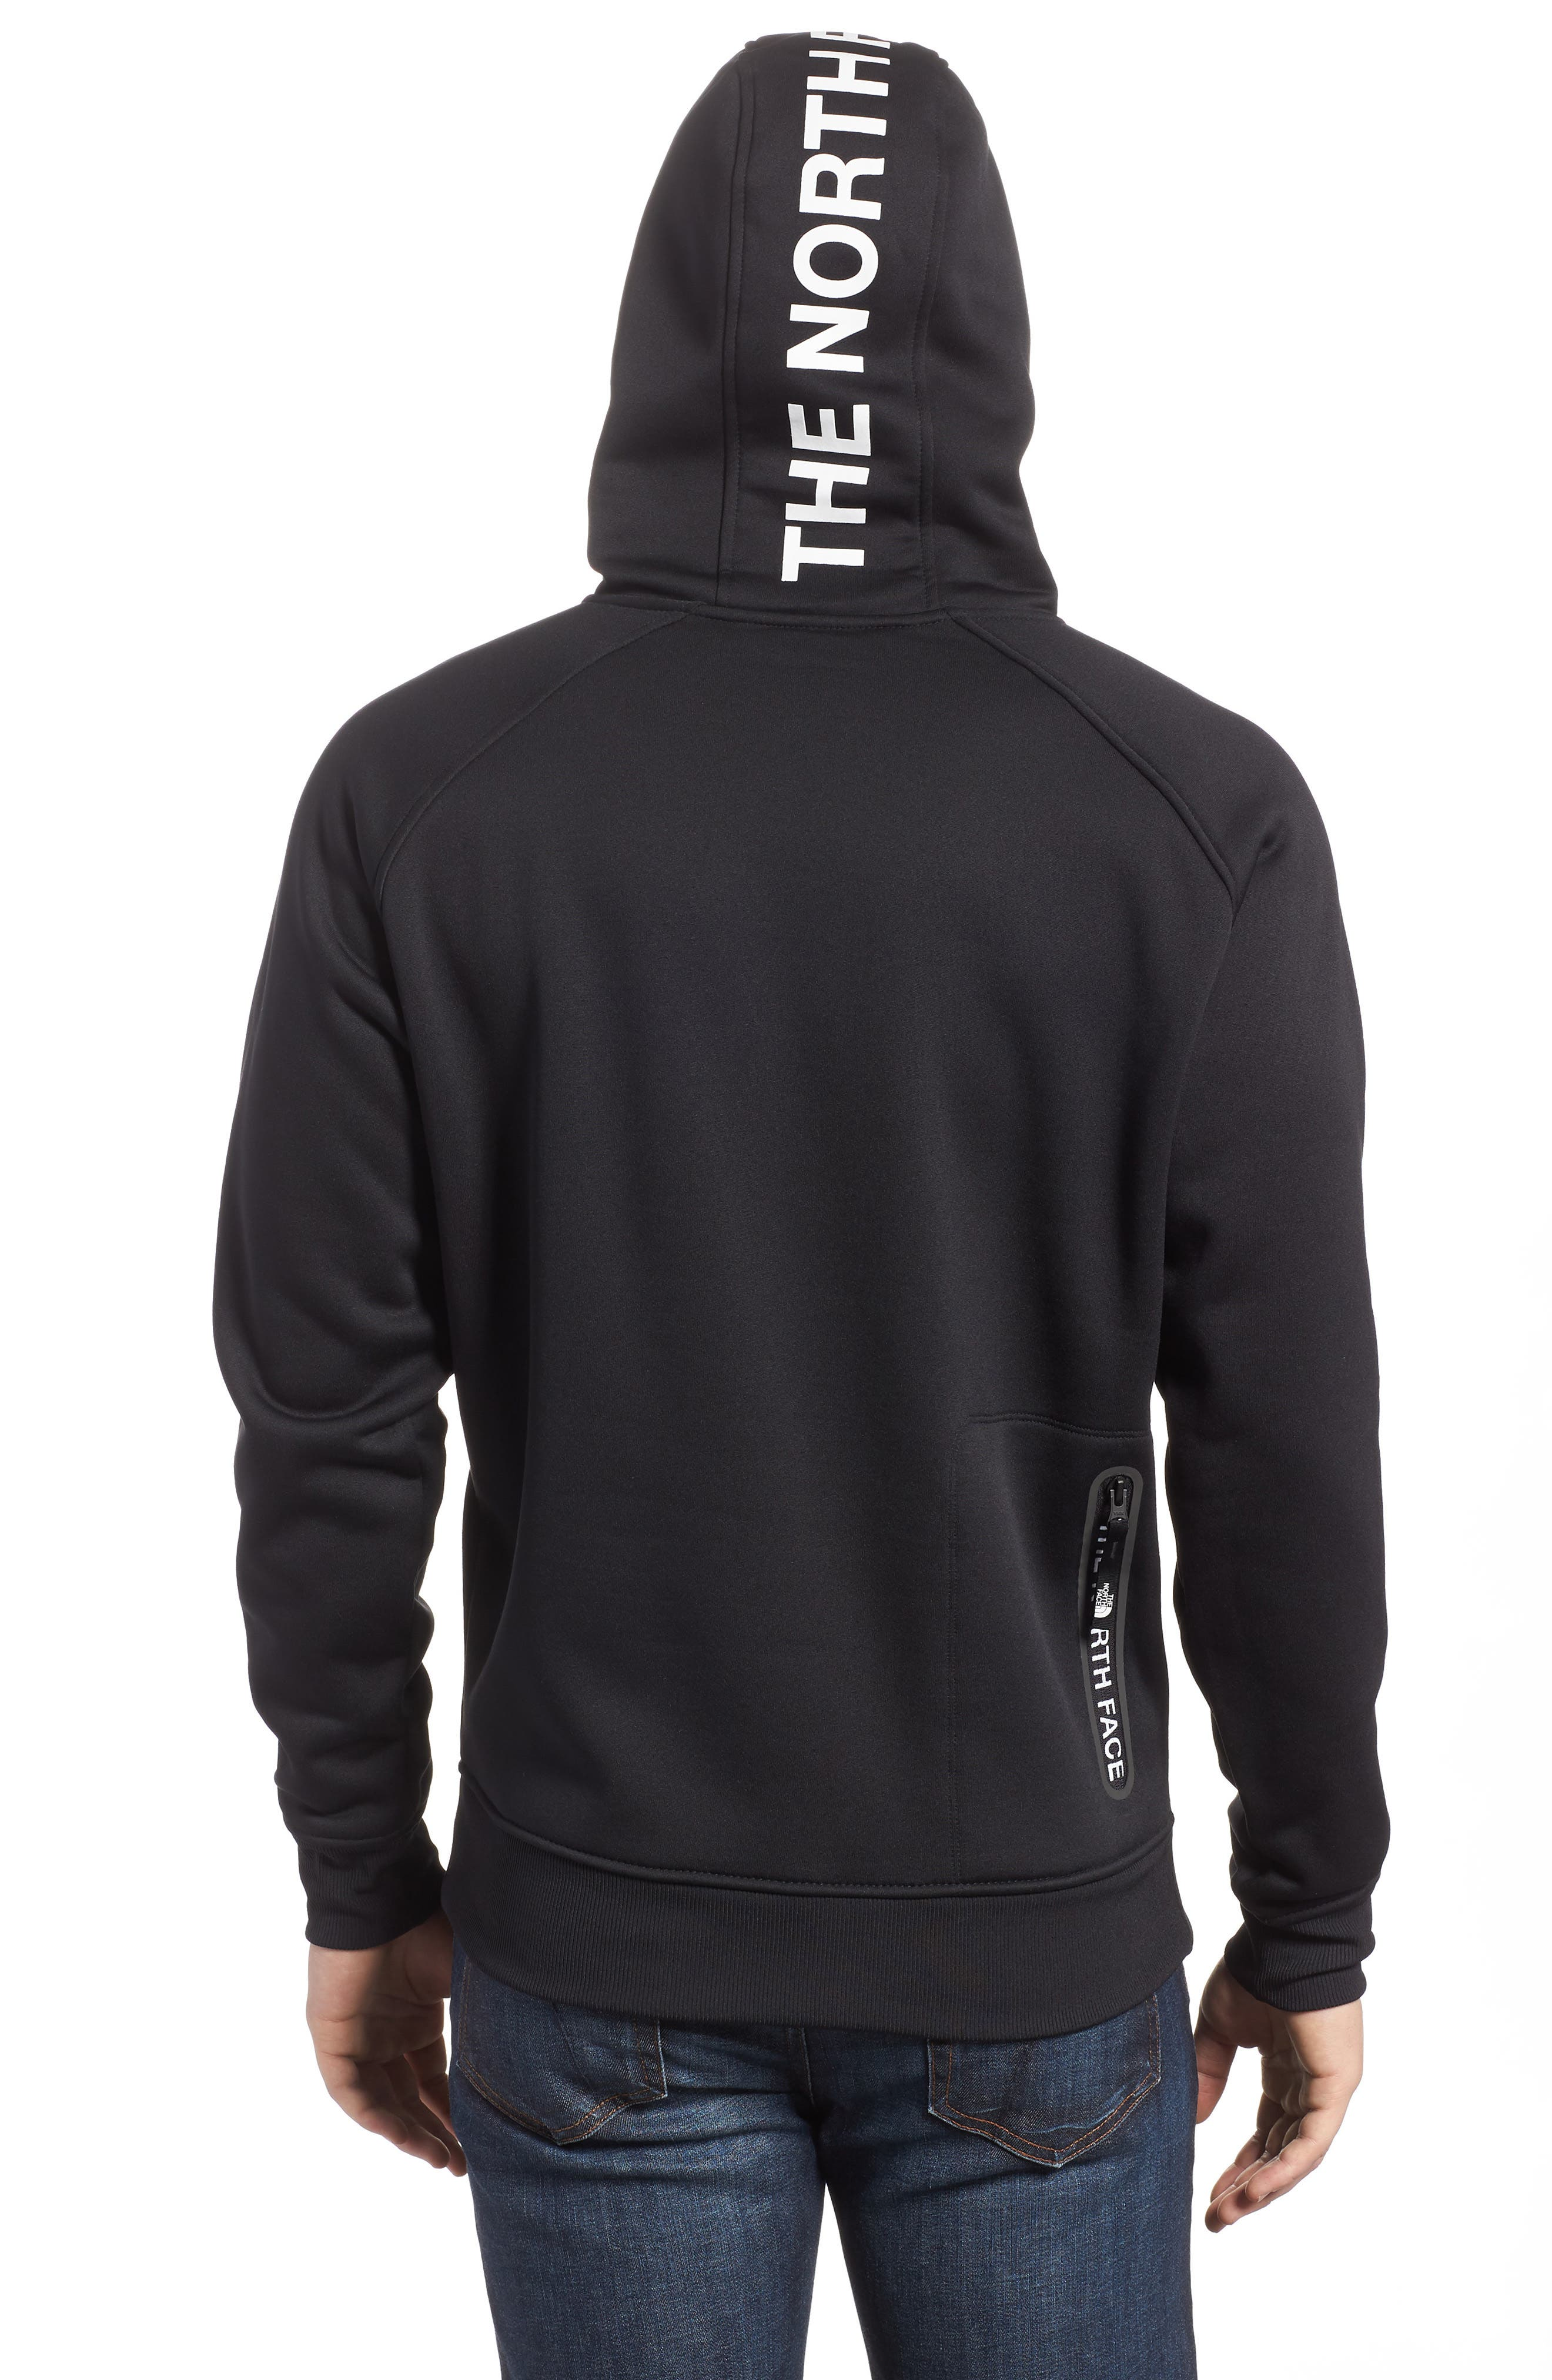 THE NORTH FACE,                             Mount Modern Hoodie,                             Alternate thumbnail 2, color,                             001